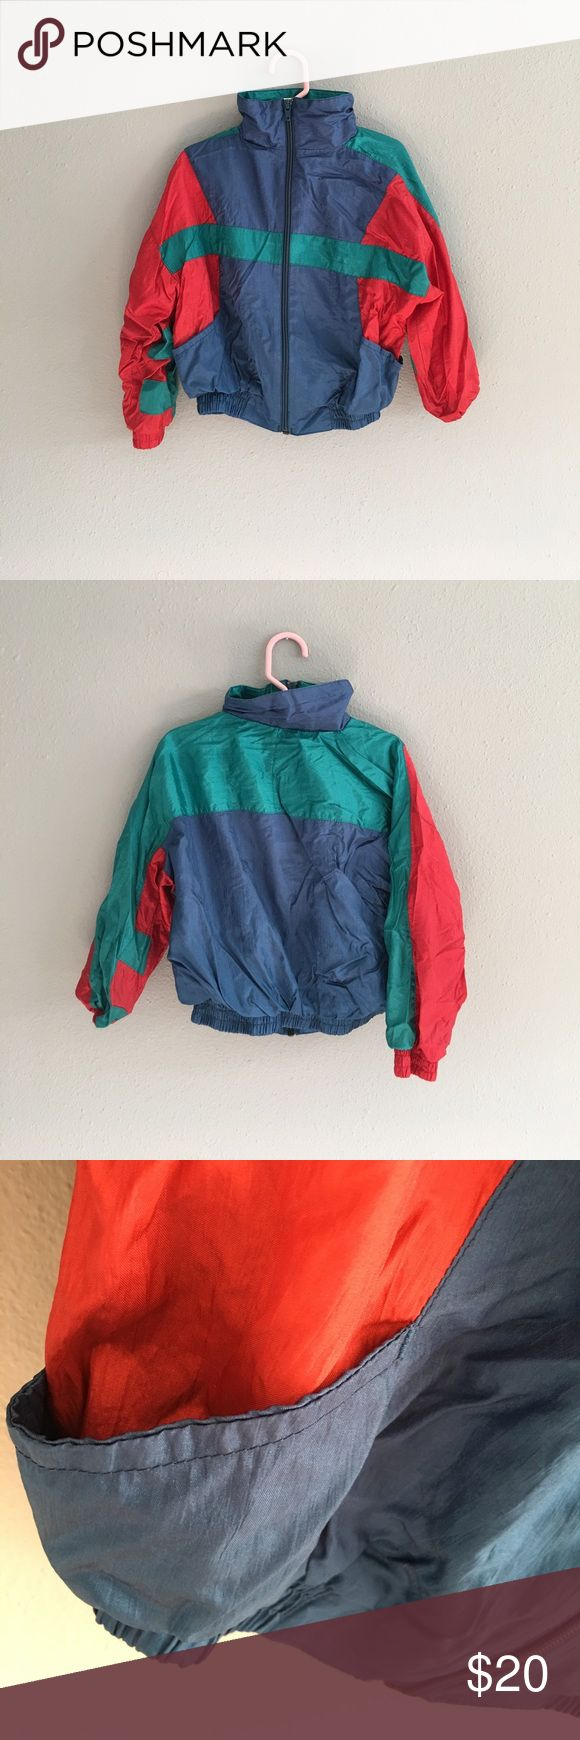 Kids Vintage Blue Green Red Windbreaker Jacket Kids Vintage Blue Green Red Windbreaker Jacket. Size 5. Could fit a 4 as well. In great condition! Vintage Jackets & Coats